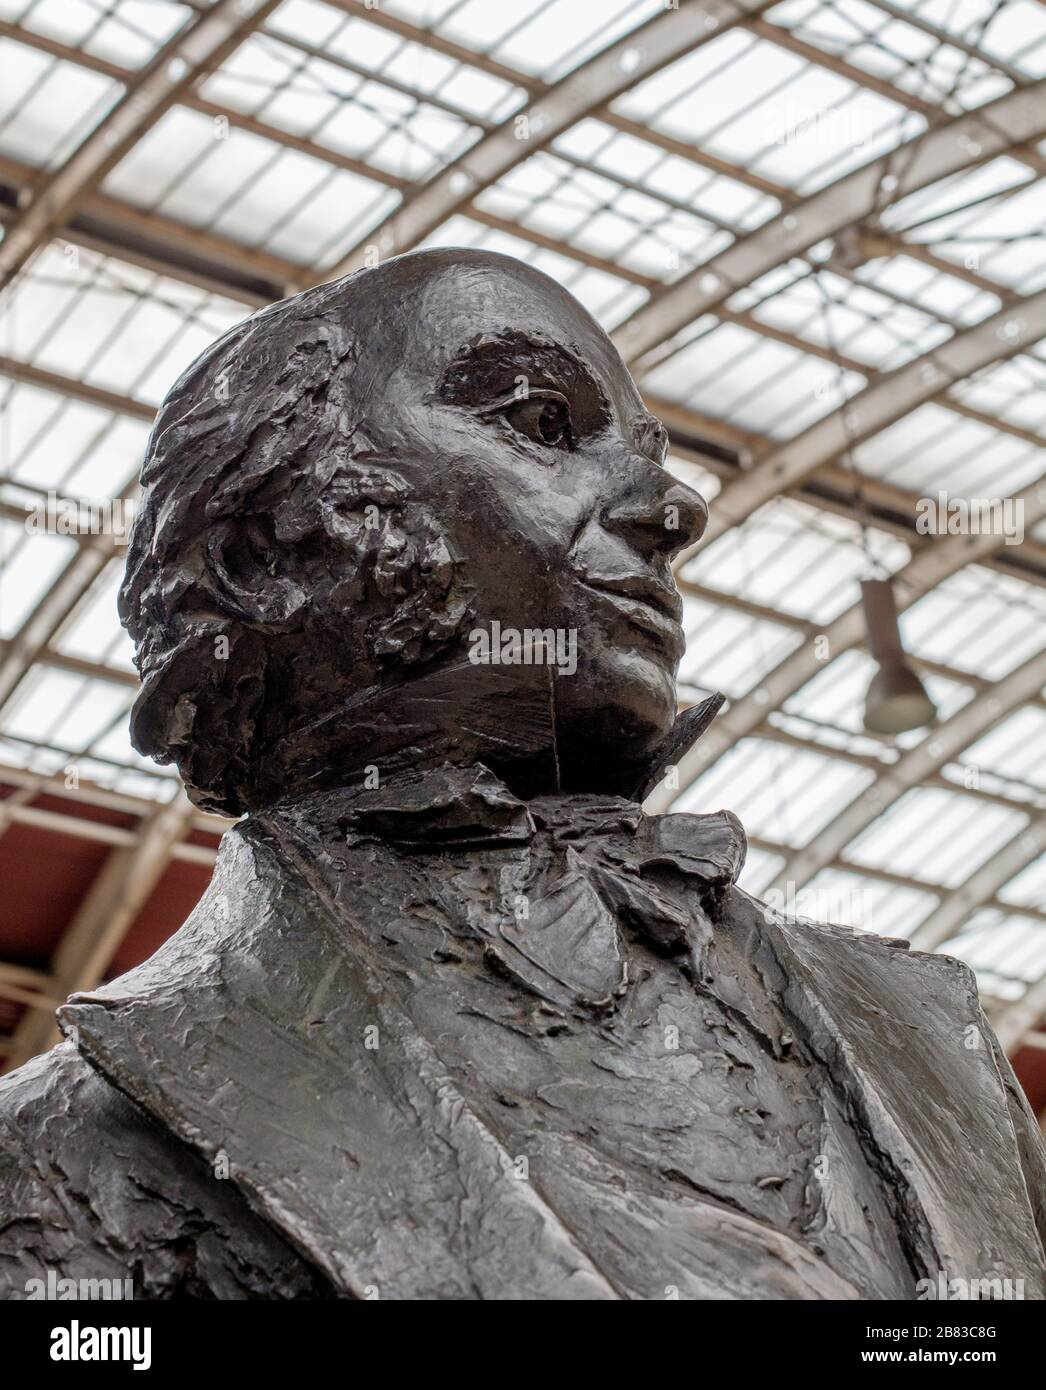 Statue of Isambard Kingdom Brunel by John Doubleday on Paddington Station, a railway terminus and London Underground complex in Paddington, London Stock Photo